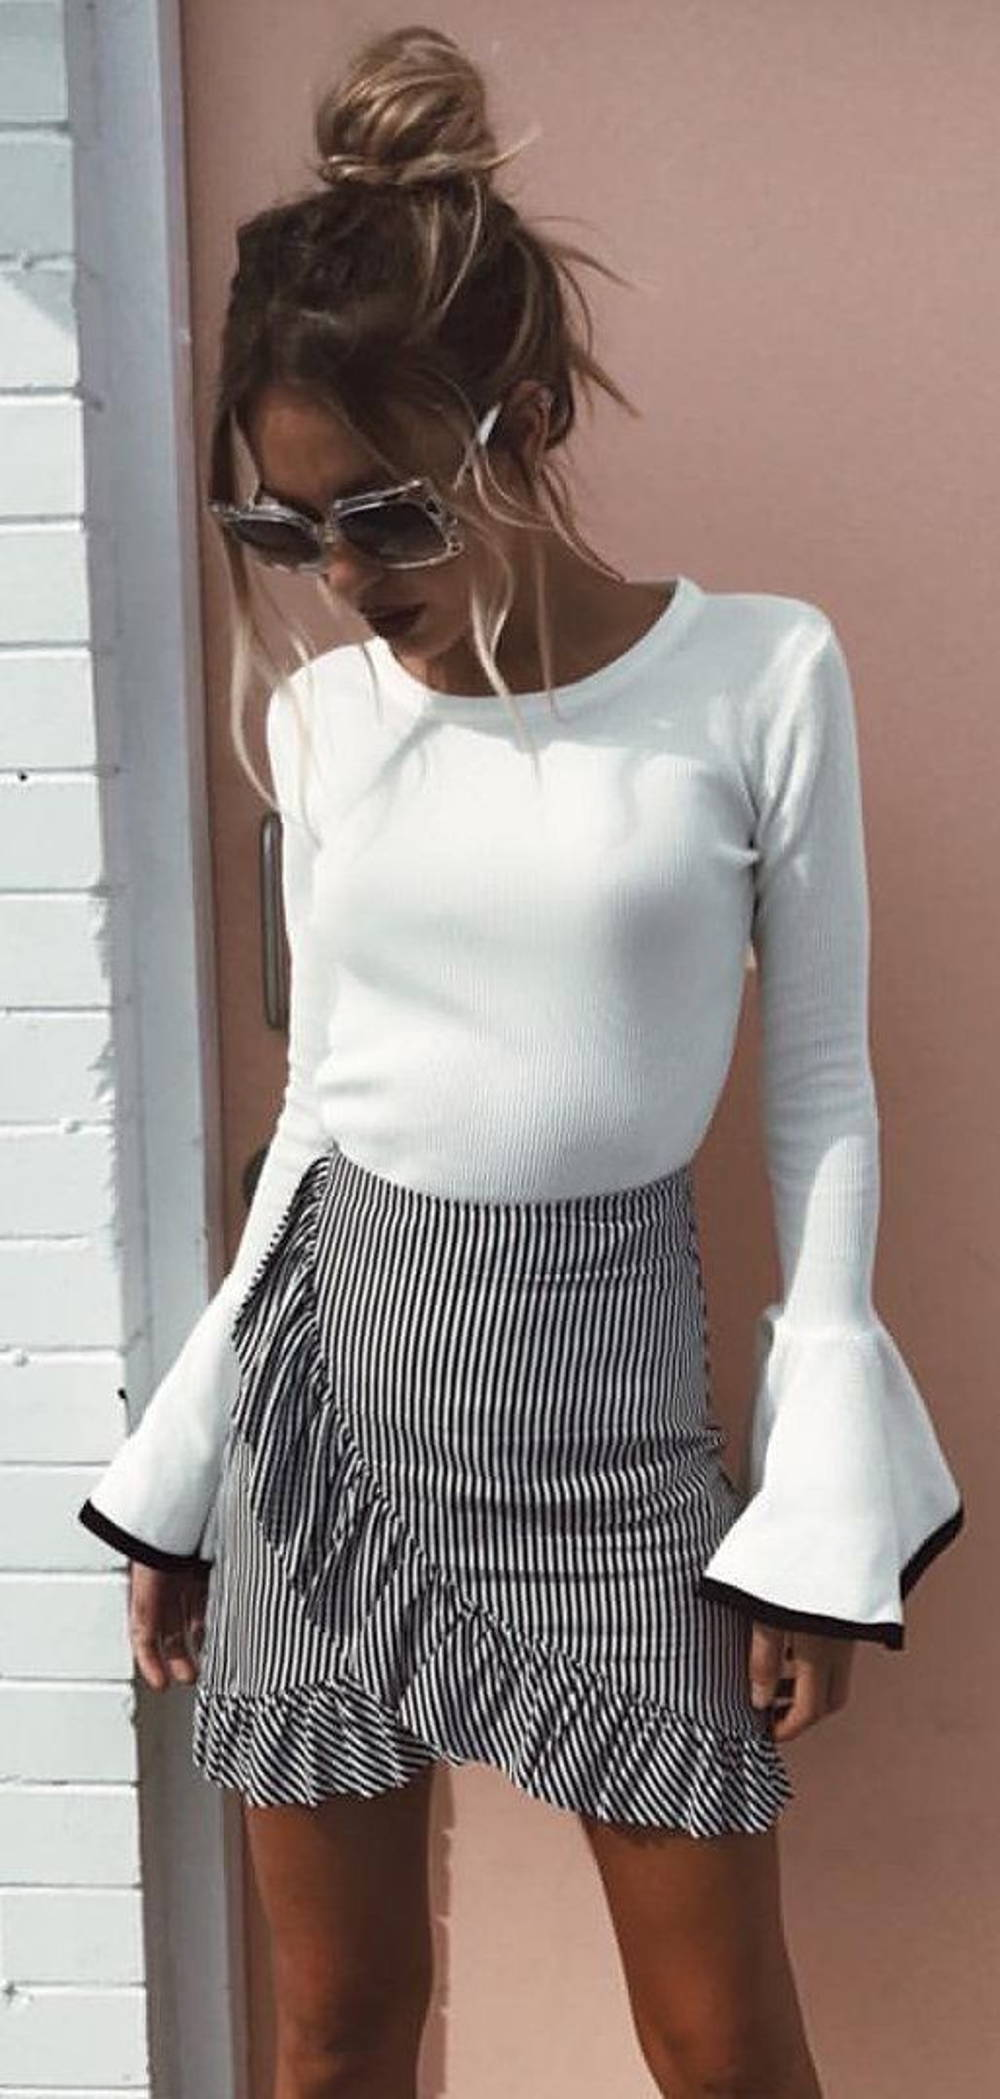 Bell sleeves ruffle skirt